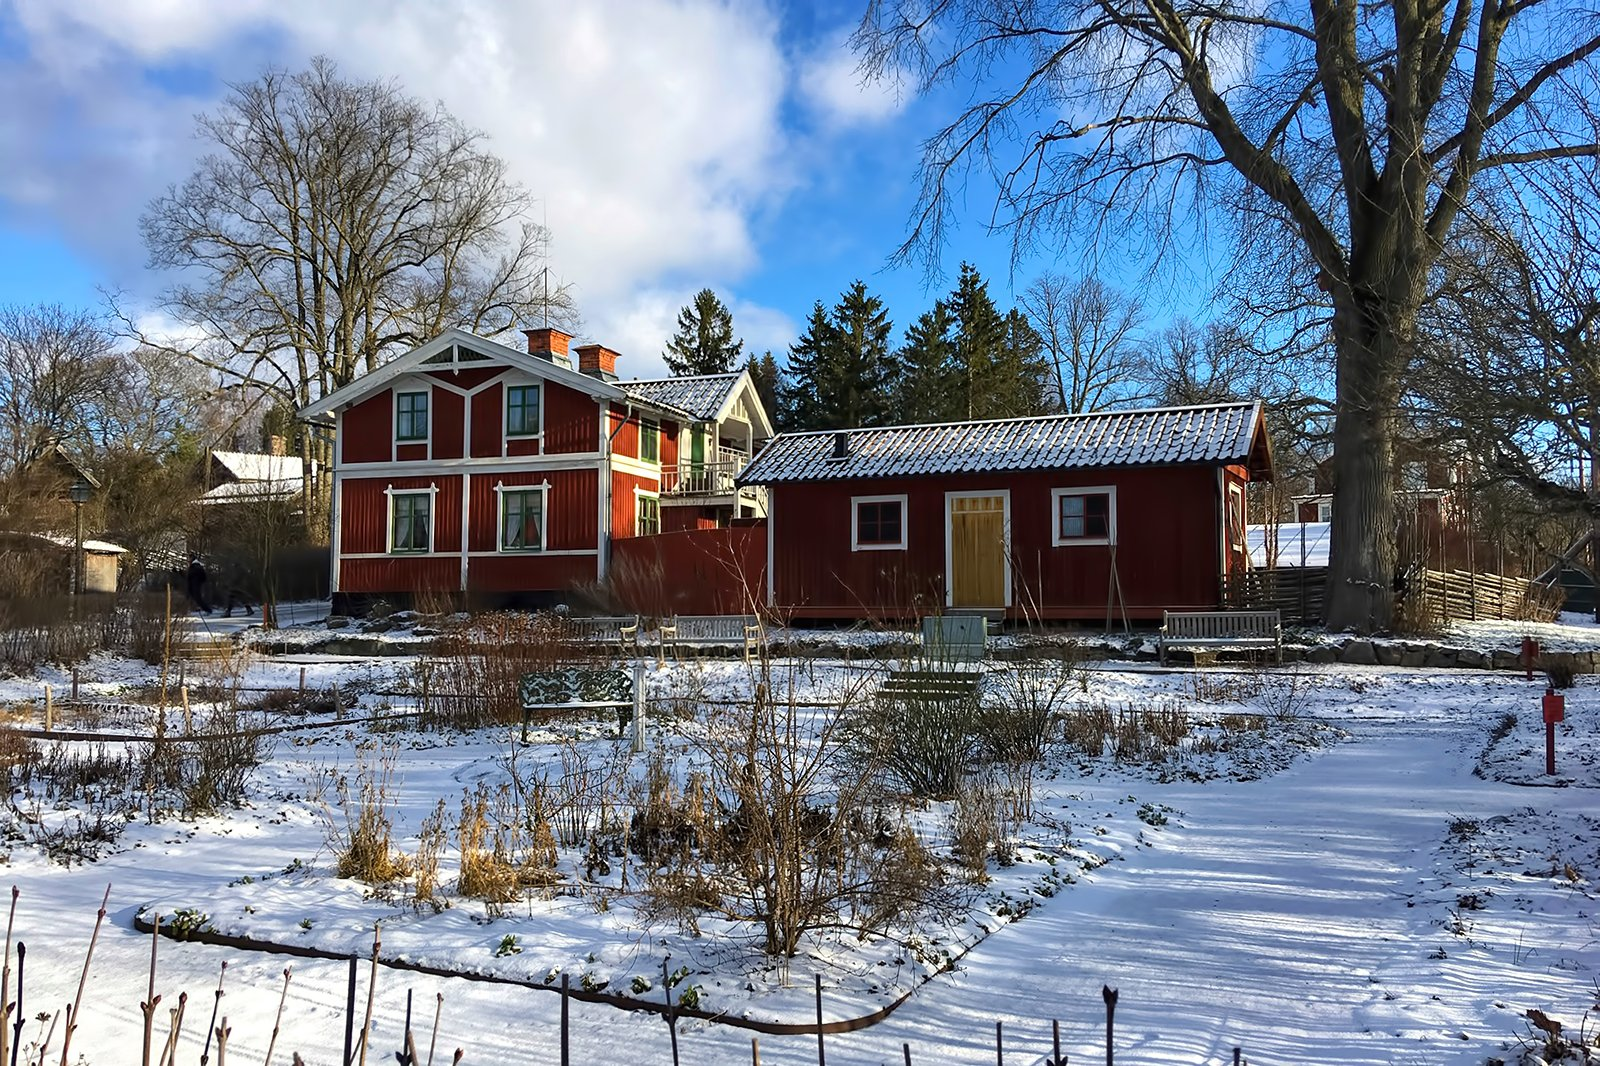 TRAVEL TO SWEDEN IN WINTER – REASONS